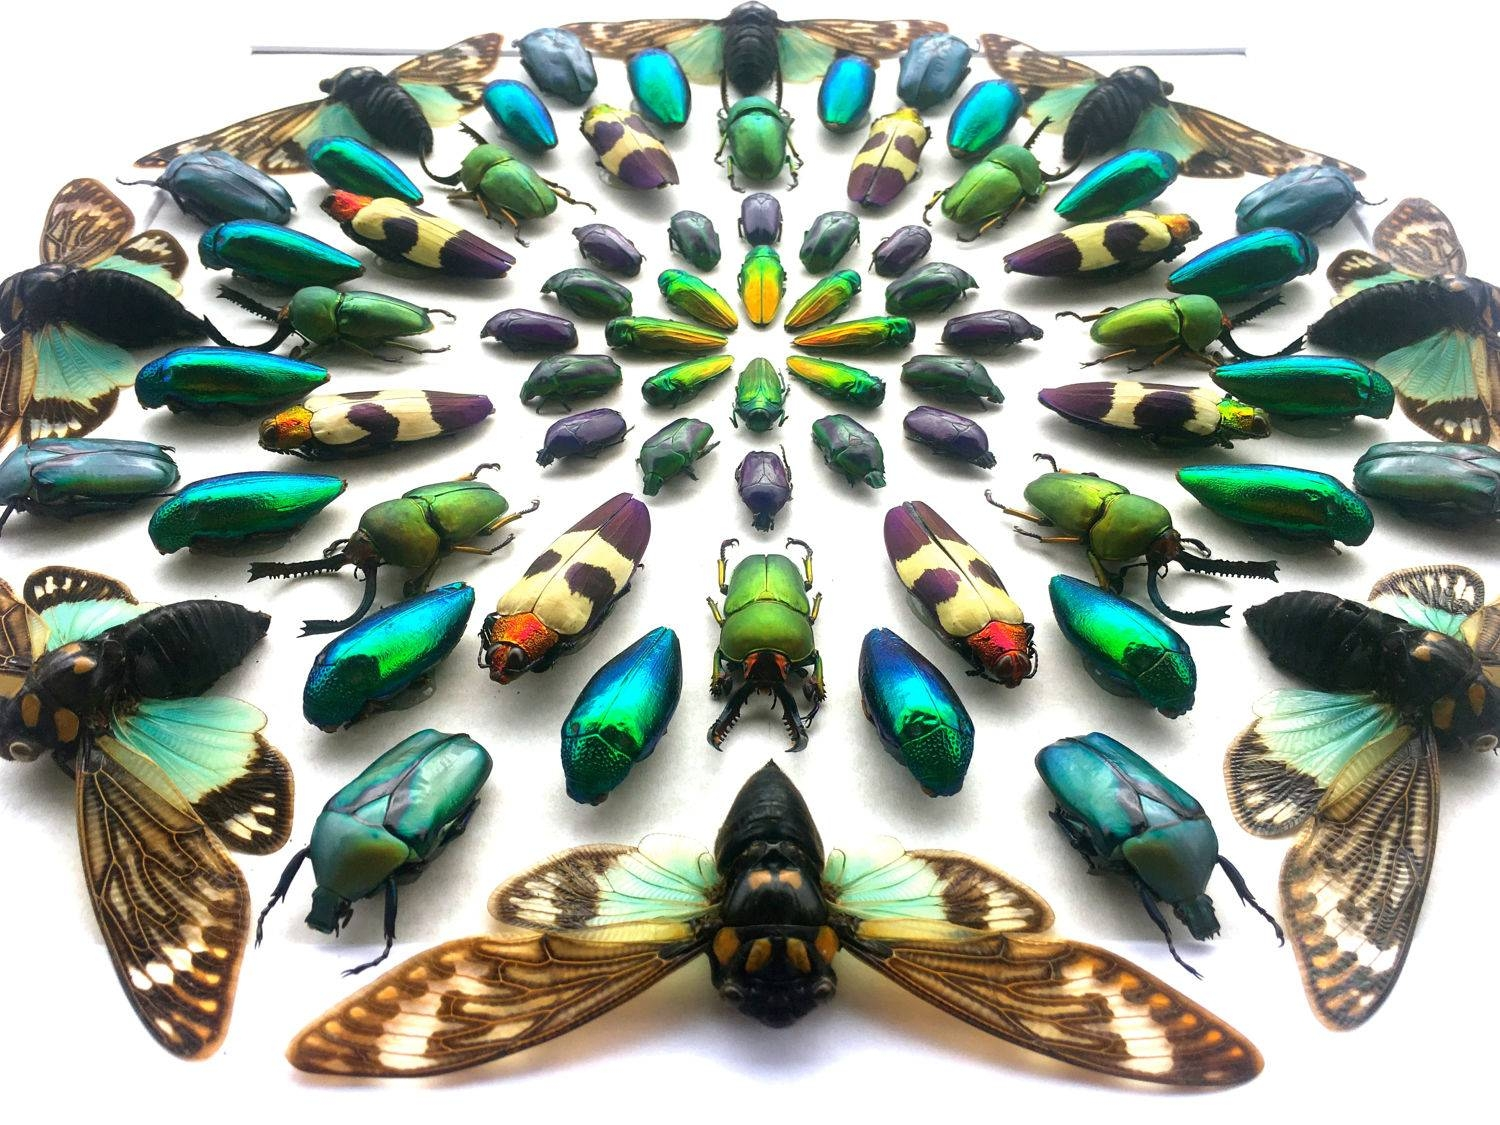 Framed Insect Display Kaleidoscope Real Bugs Framed Beetle Art With 2018 Kaleidoscope Wall Art (View 9 of 20)